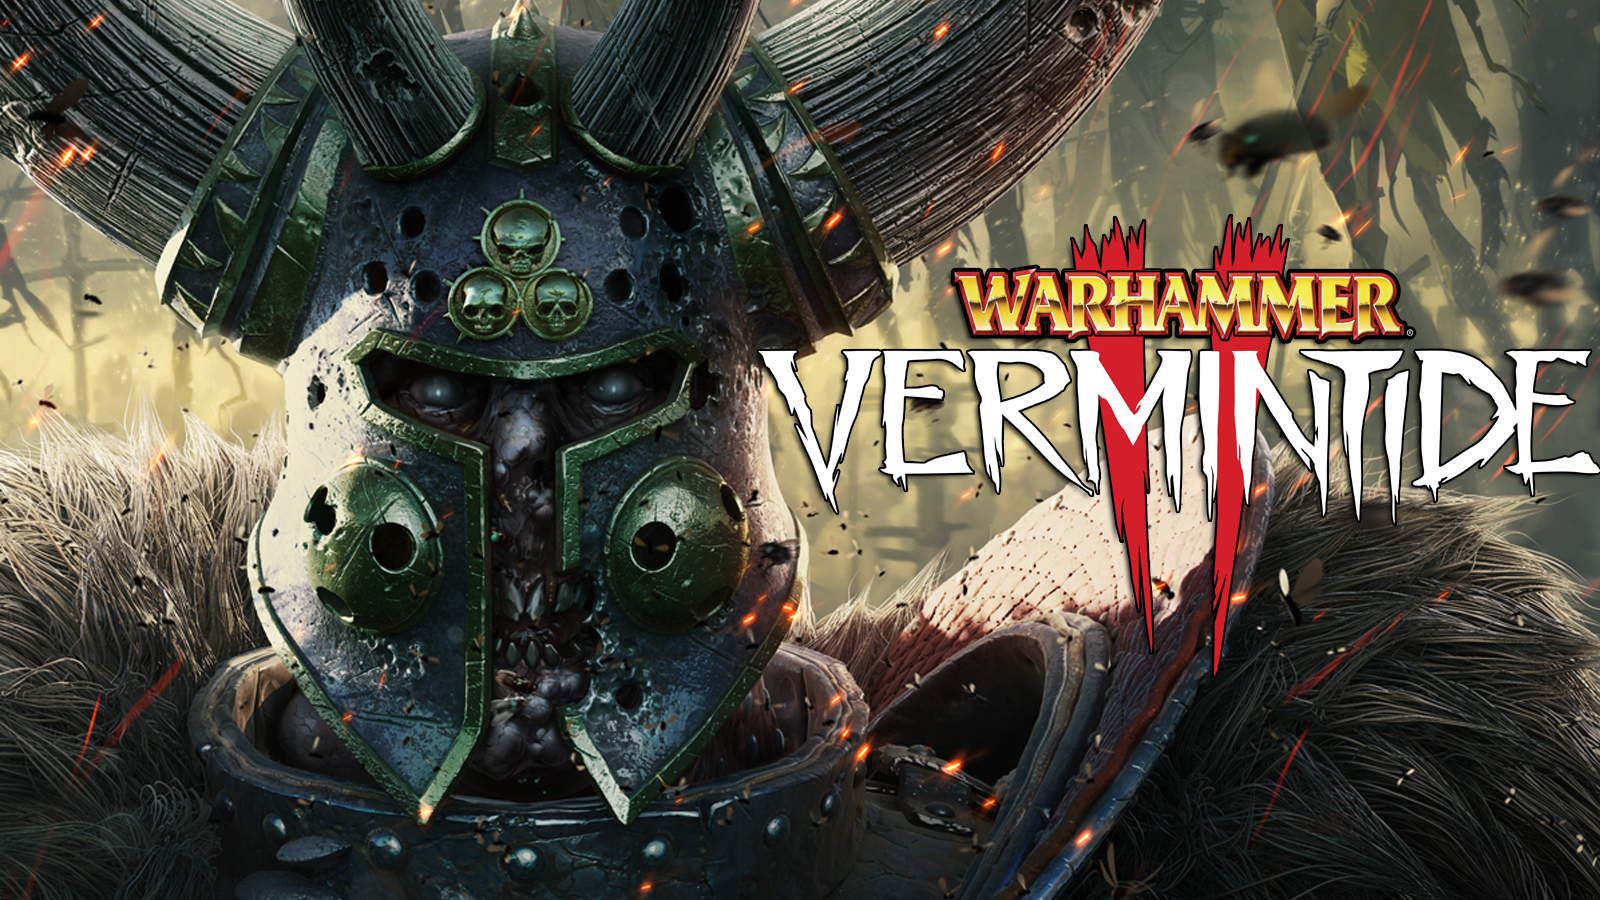 Warhammer: Vermintide 2 Revealed with Chaos, Mod Support and Dedica